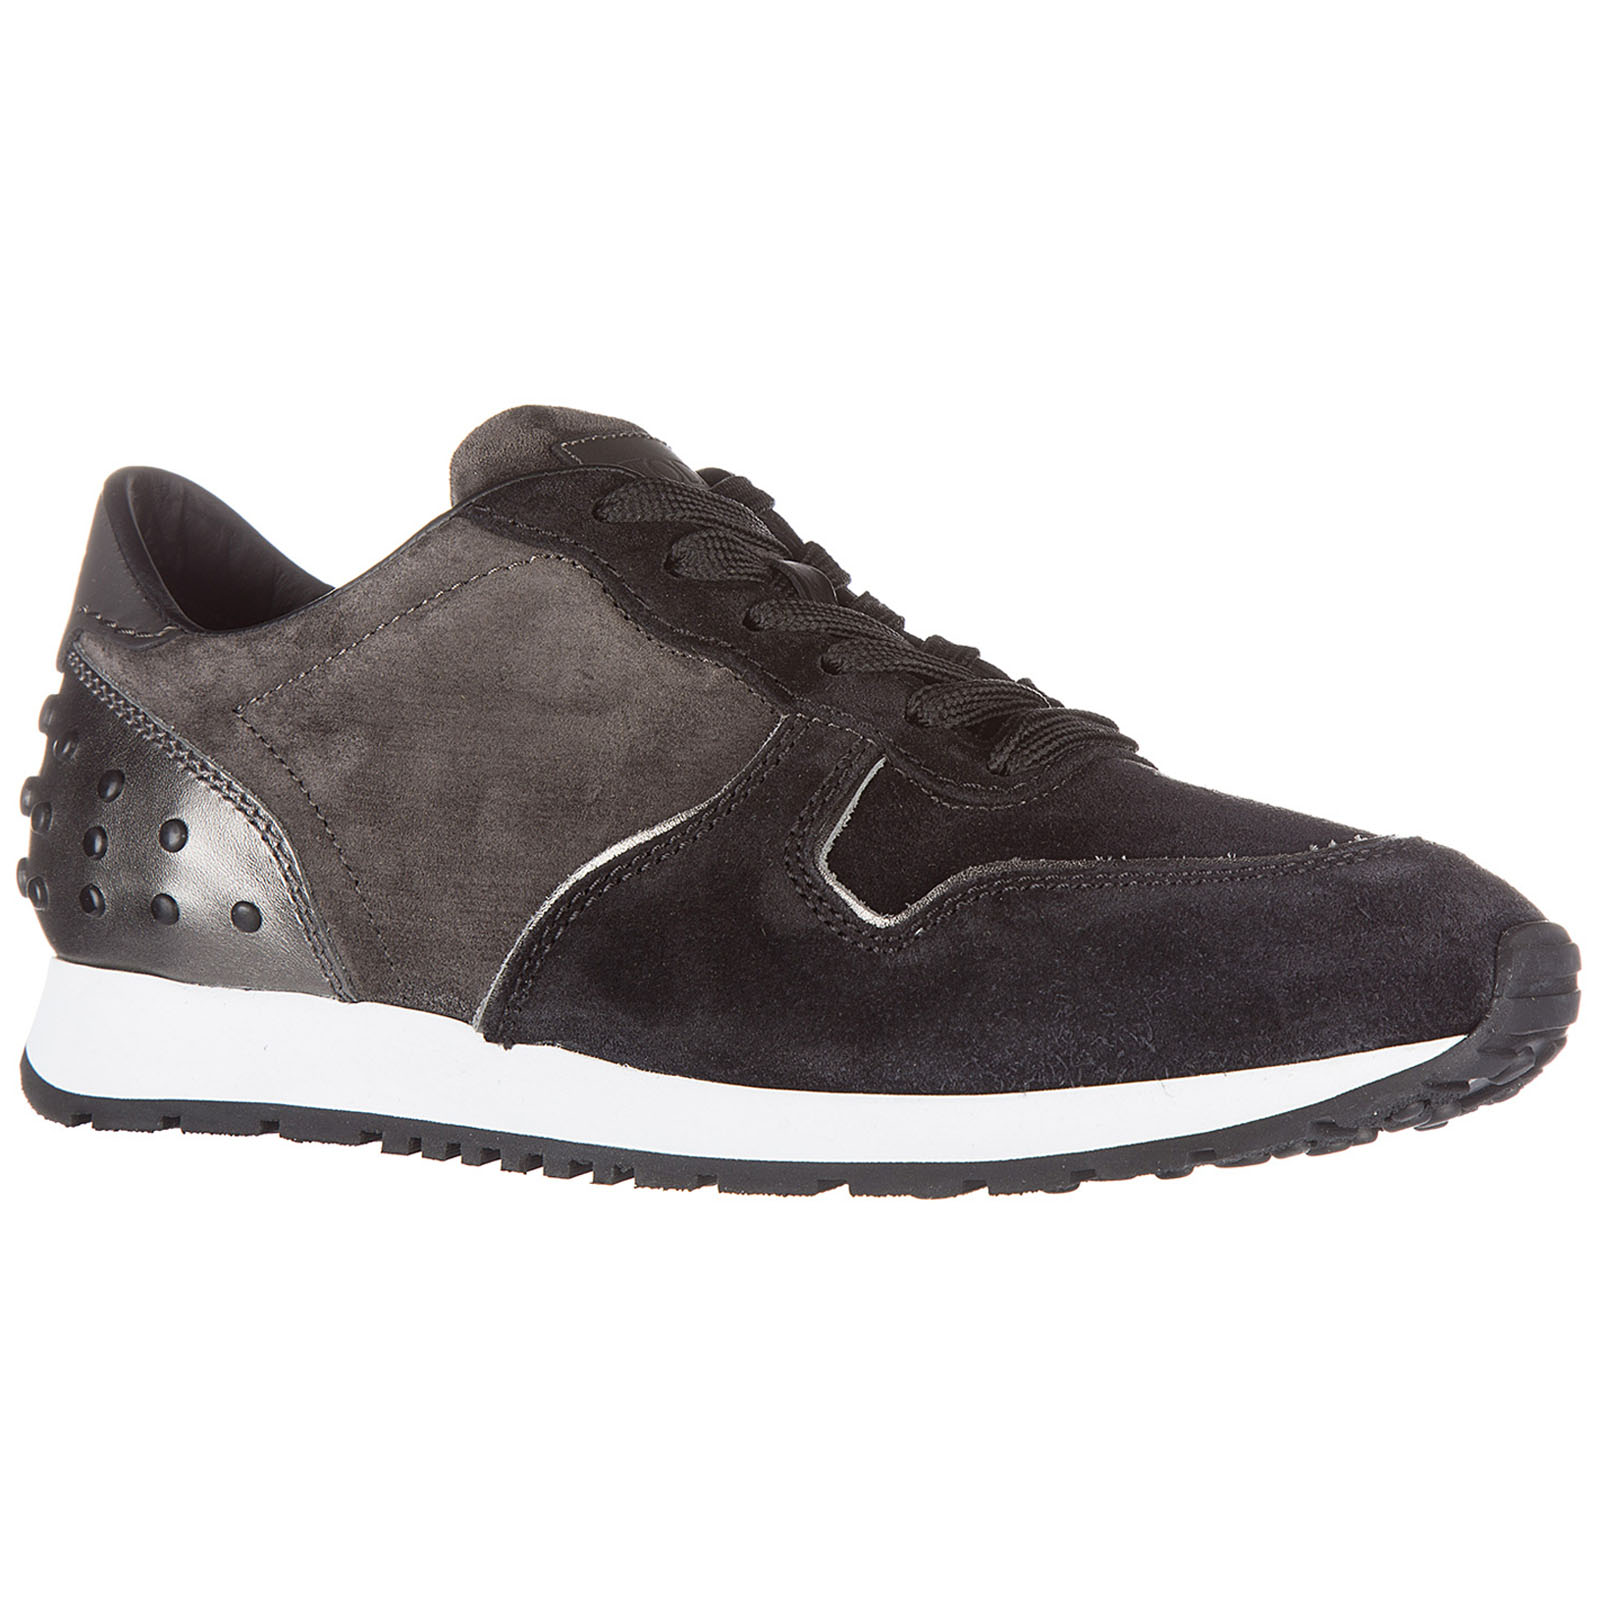 Women's shoes suede trainers sneakers